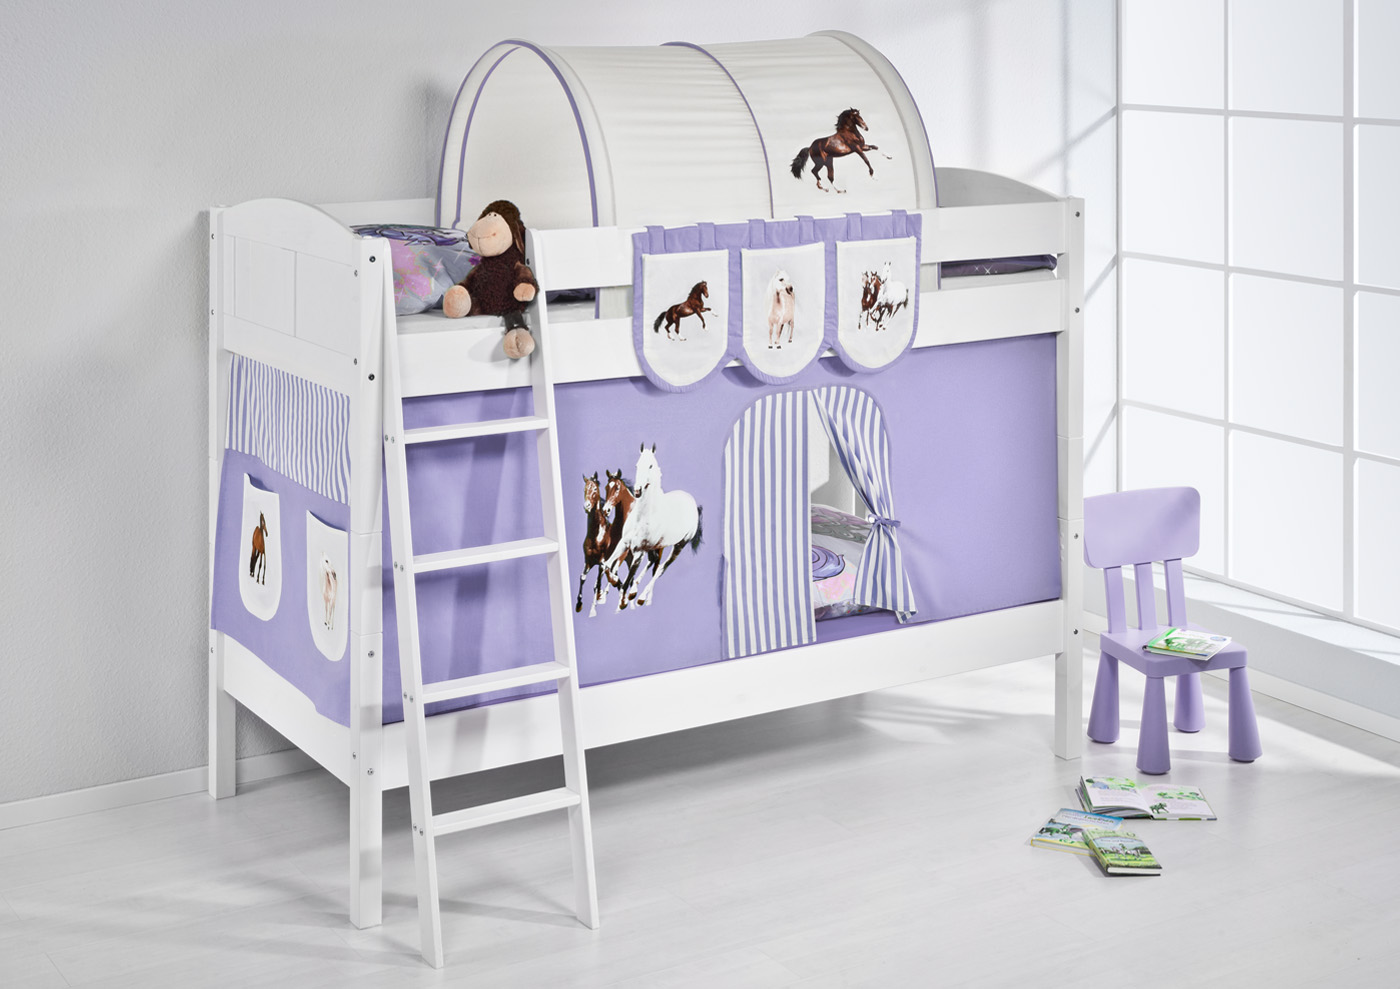 Etagenbett Kinder Spielbett : Kinder matrassen luxury dreams home kinderbett hochbett